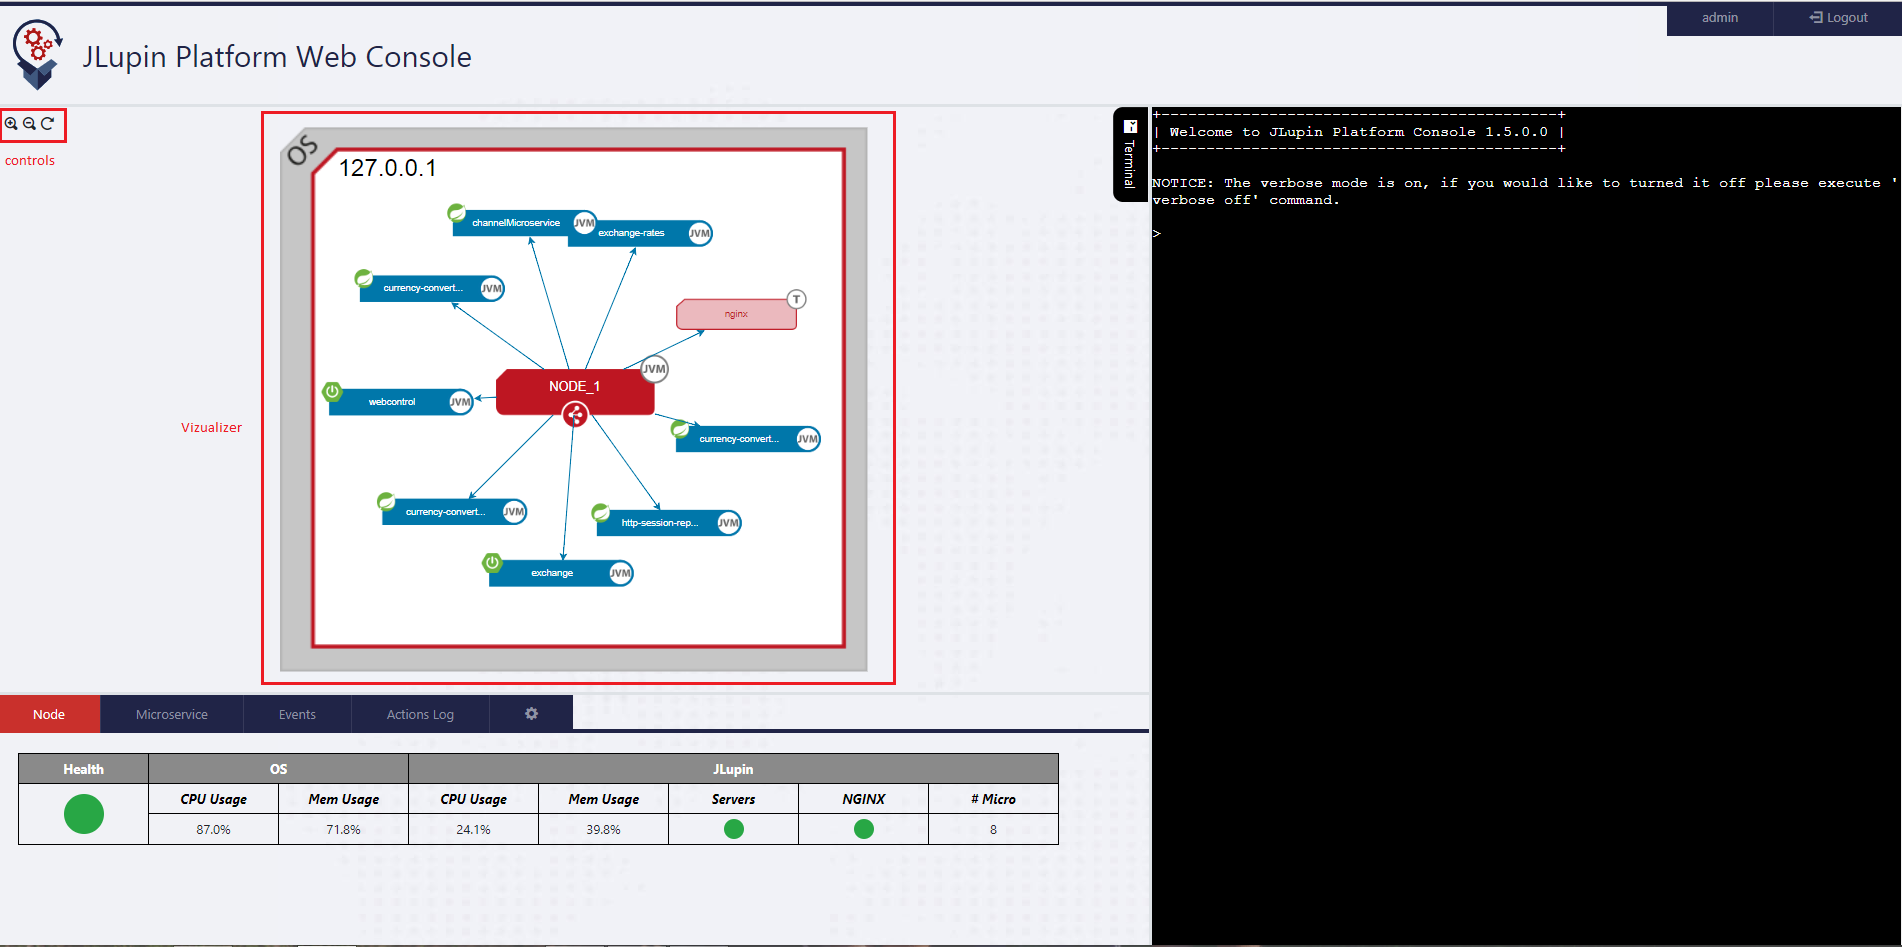 Figure 2. JLupin Platform Web Console - Visualizer overview.